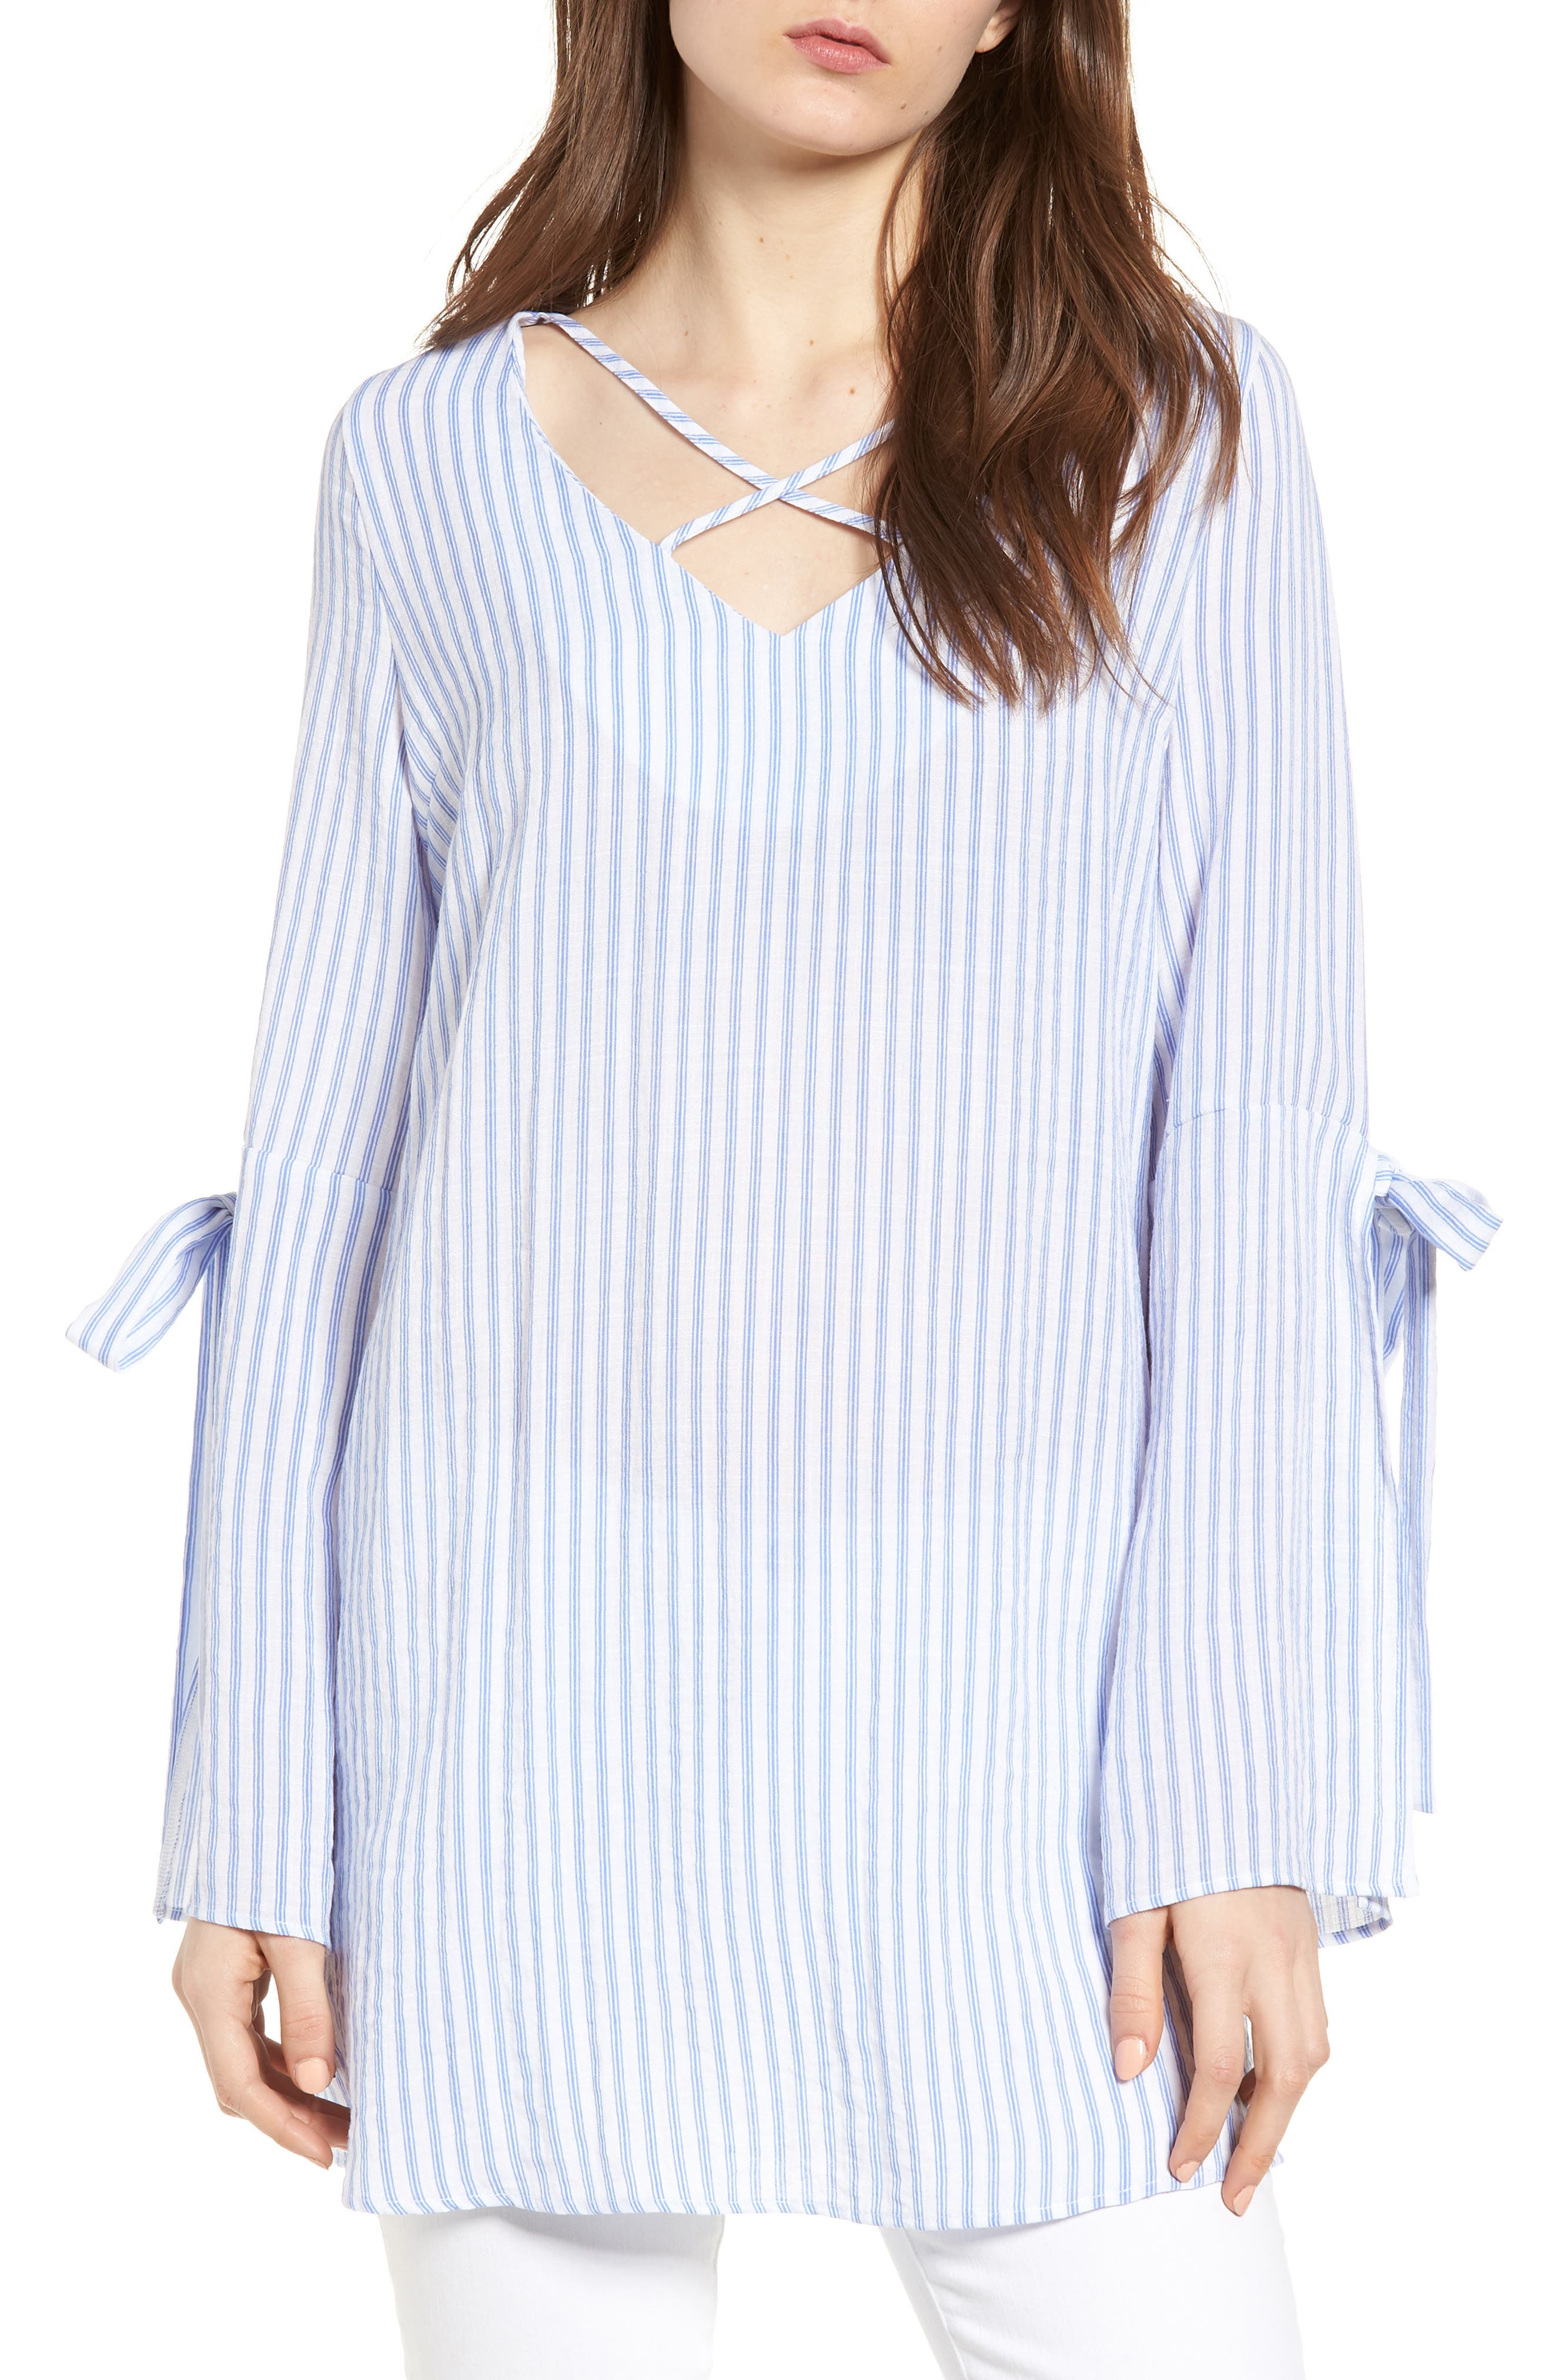 Bishop + Young Stripe Tunic Top,                             Main thumbnail 1, color,                             400